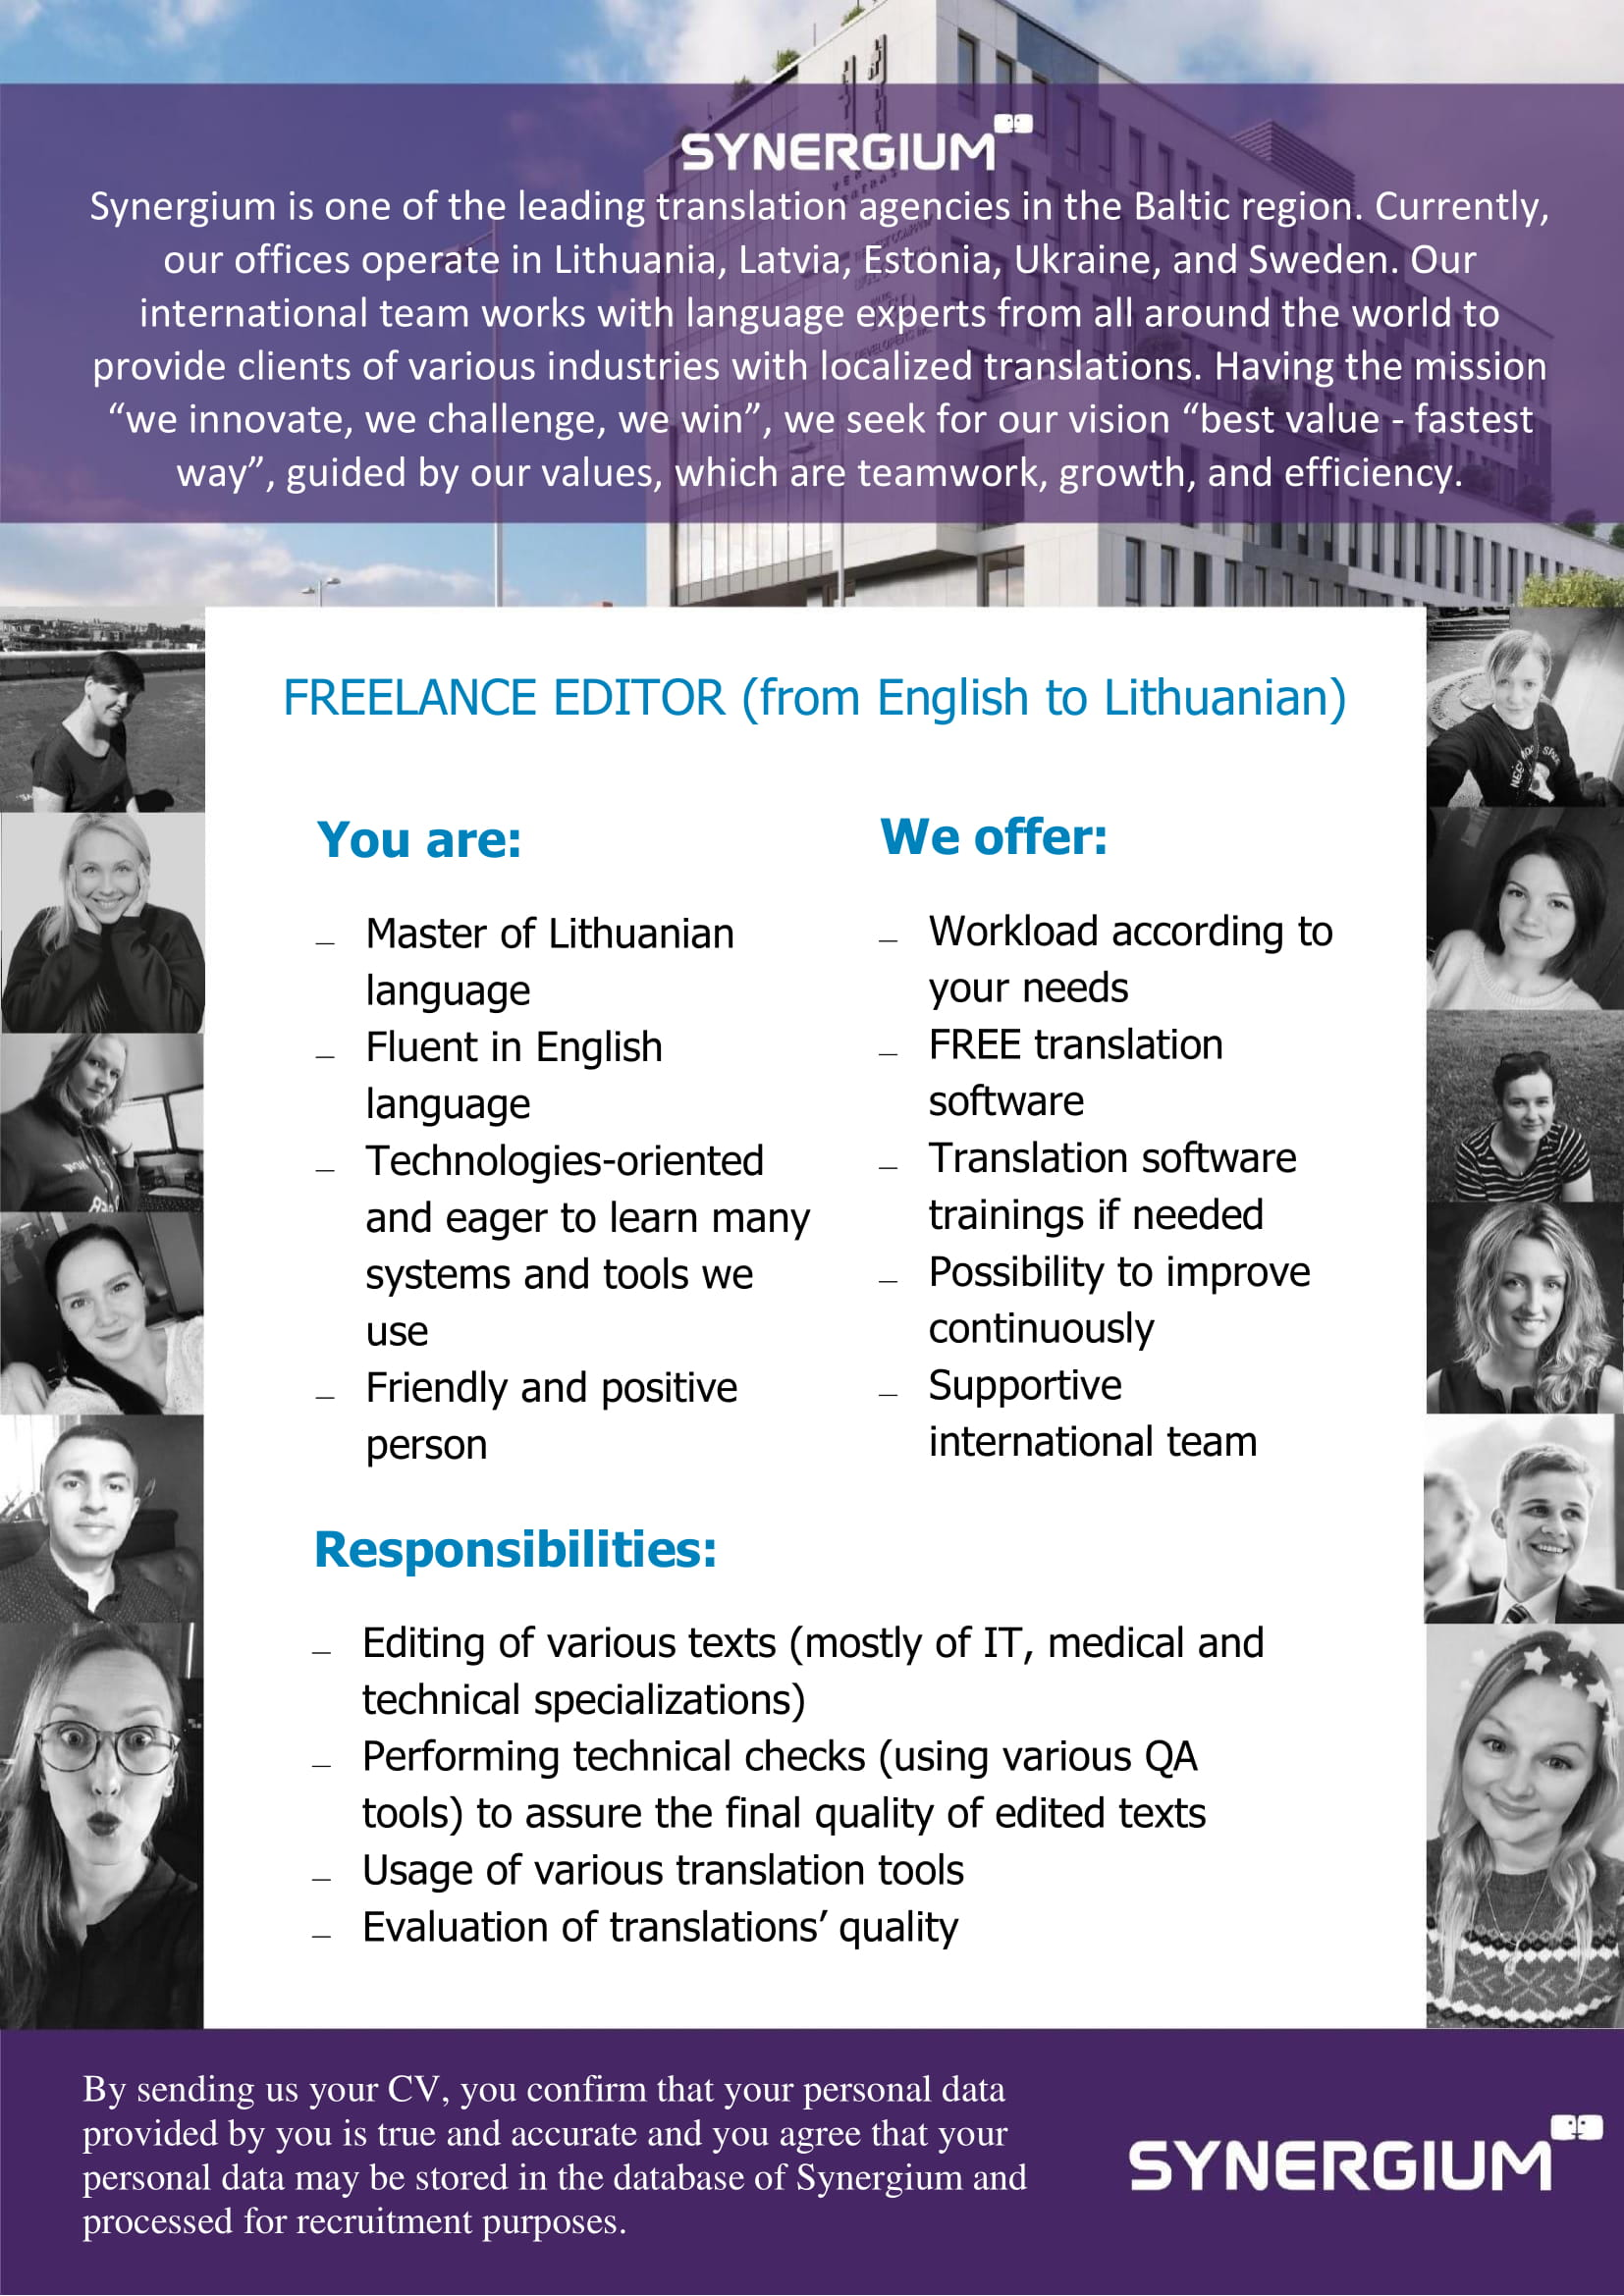 freelance editor from english to lithuanian job advertisement synergium